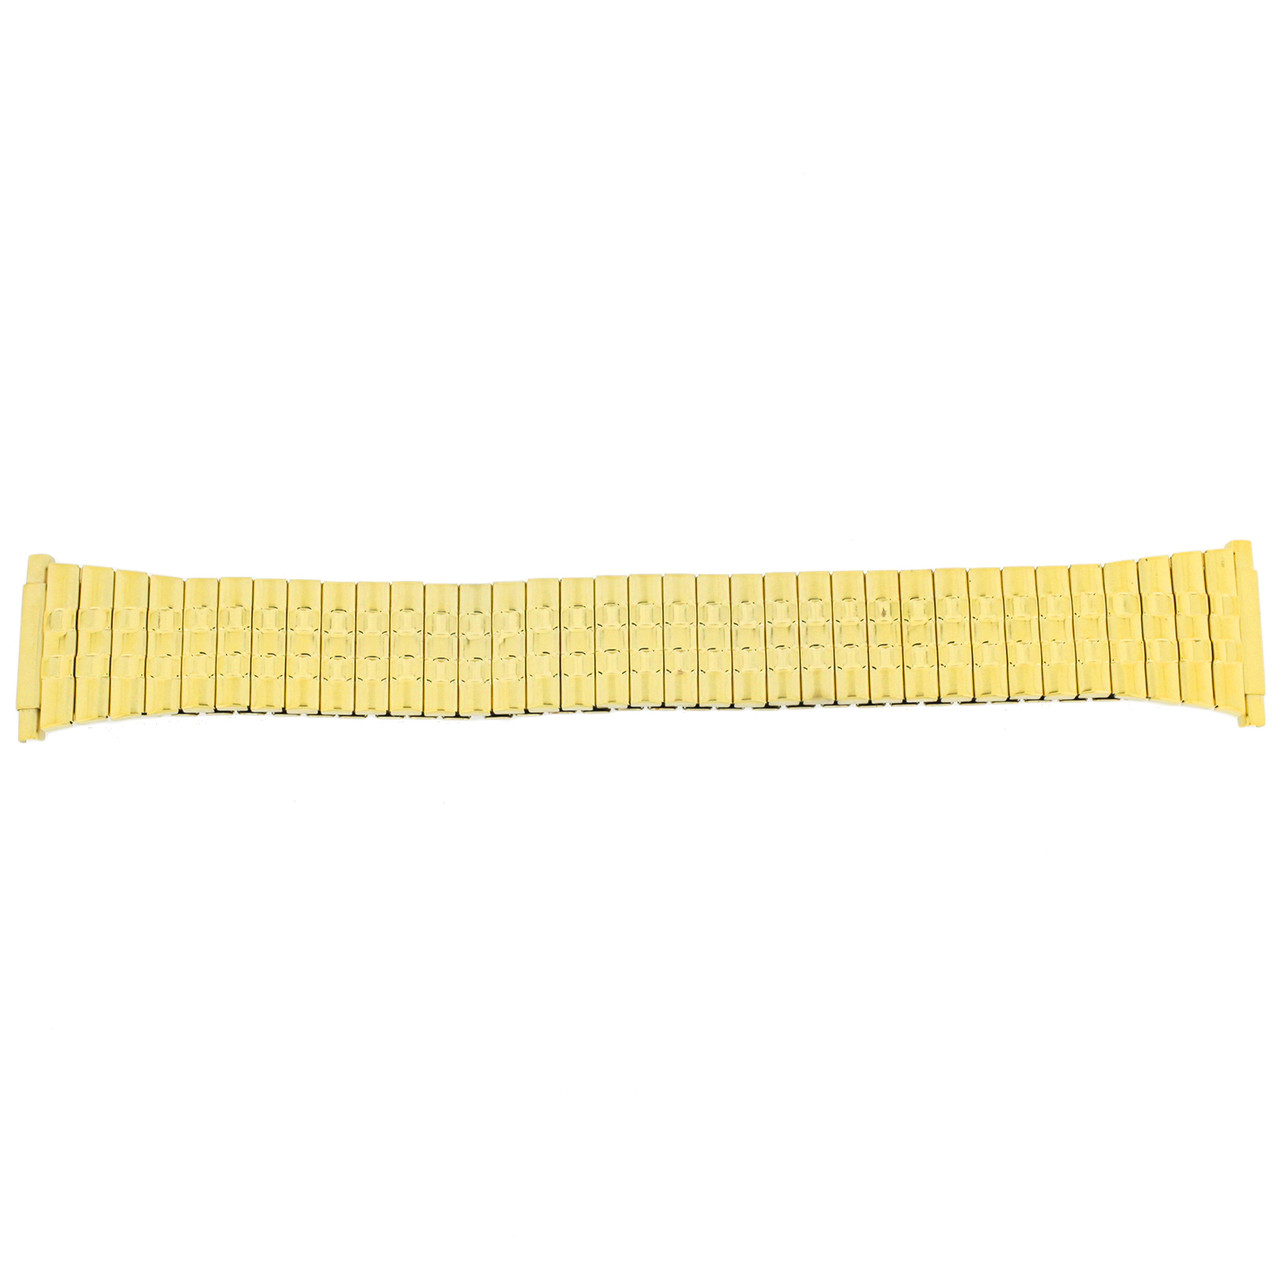 Watch Band Expansion Metal Stretch Gold Plated TSMET183 16mm-20mm - Main